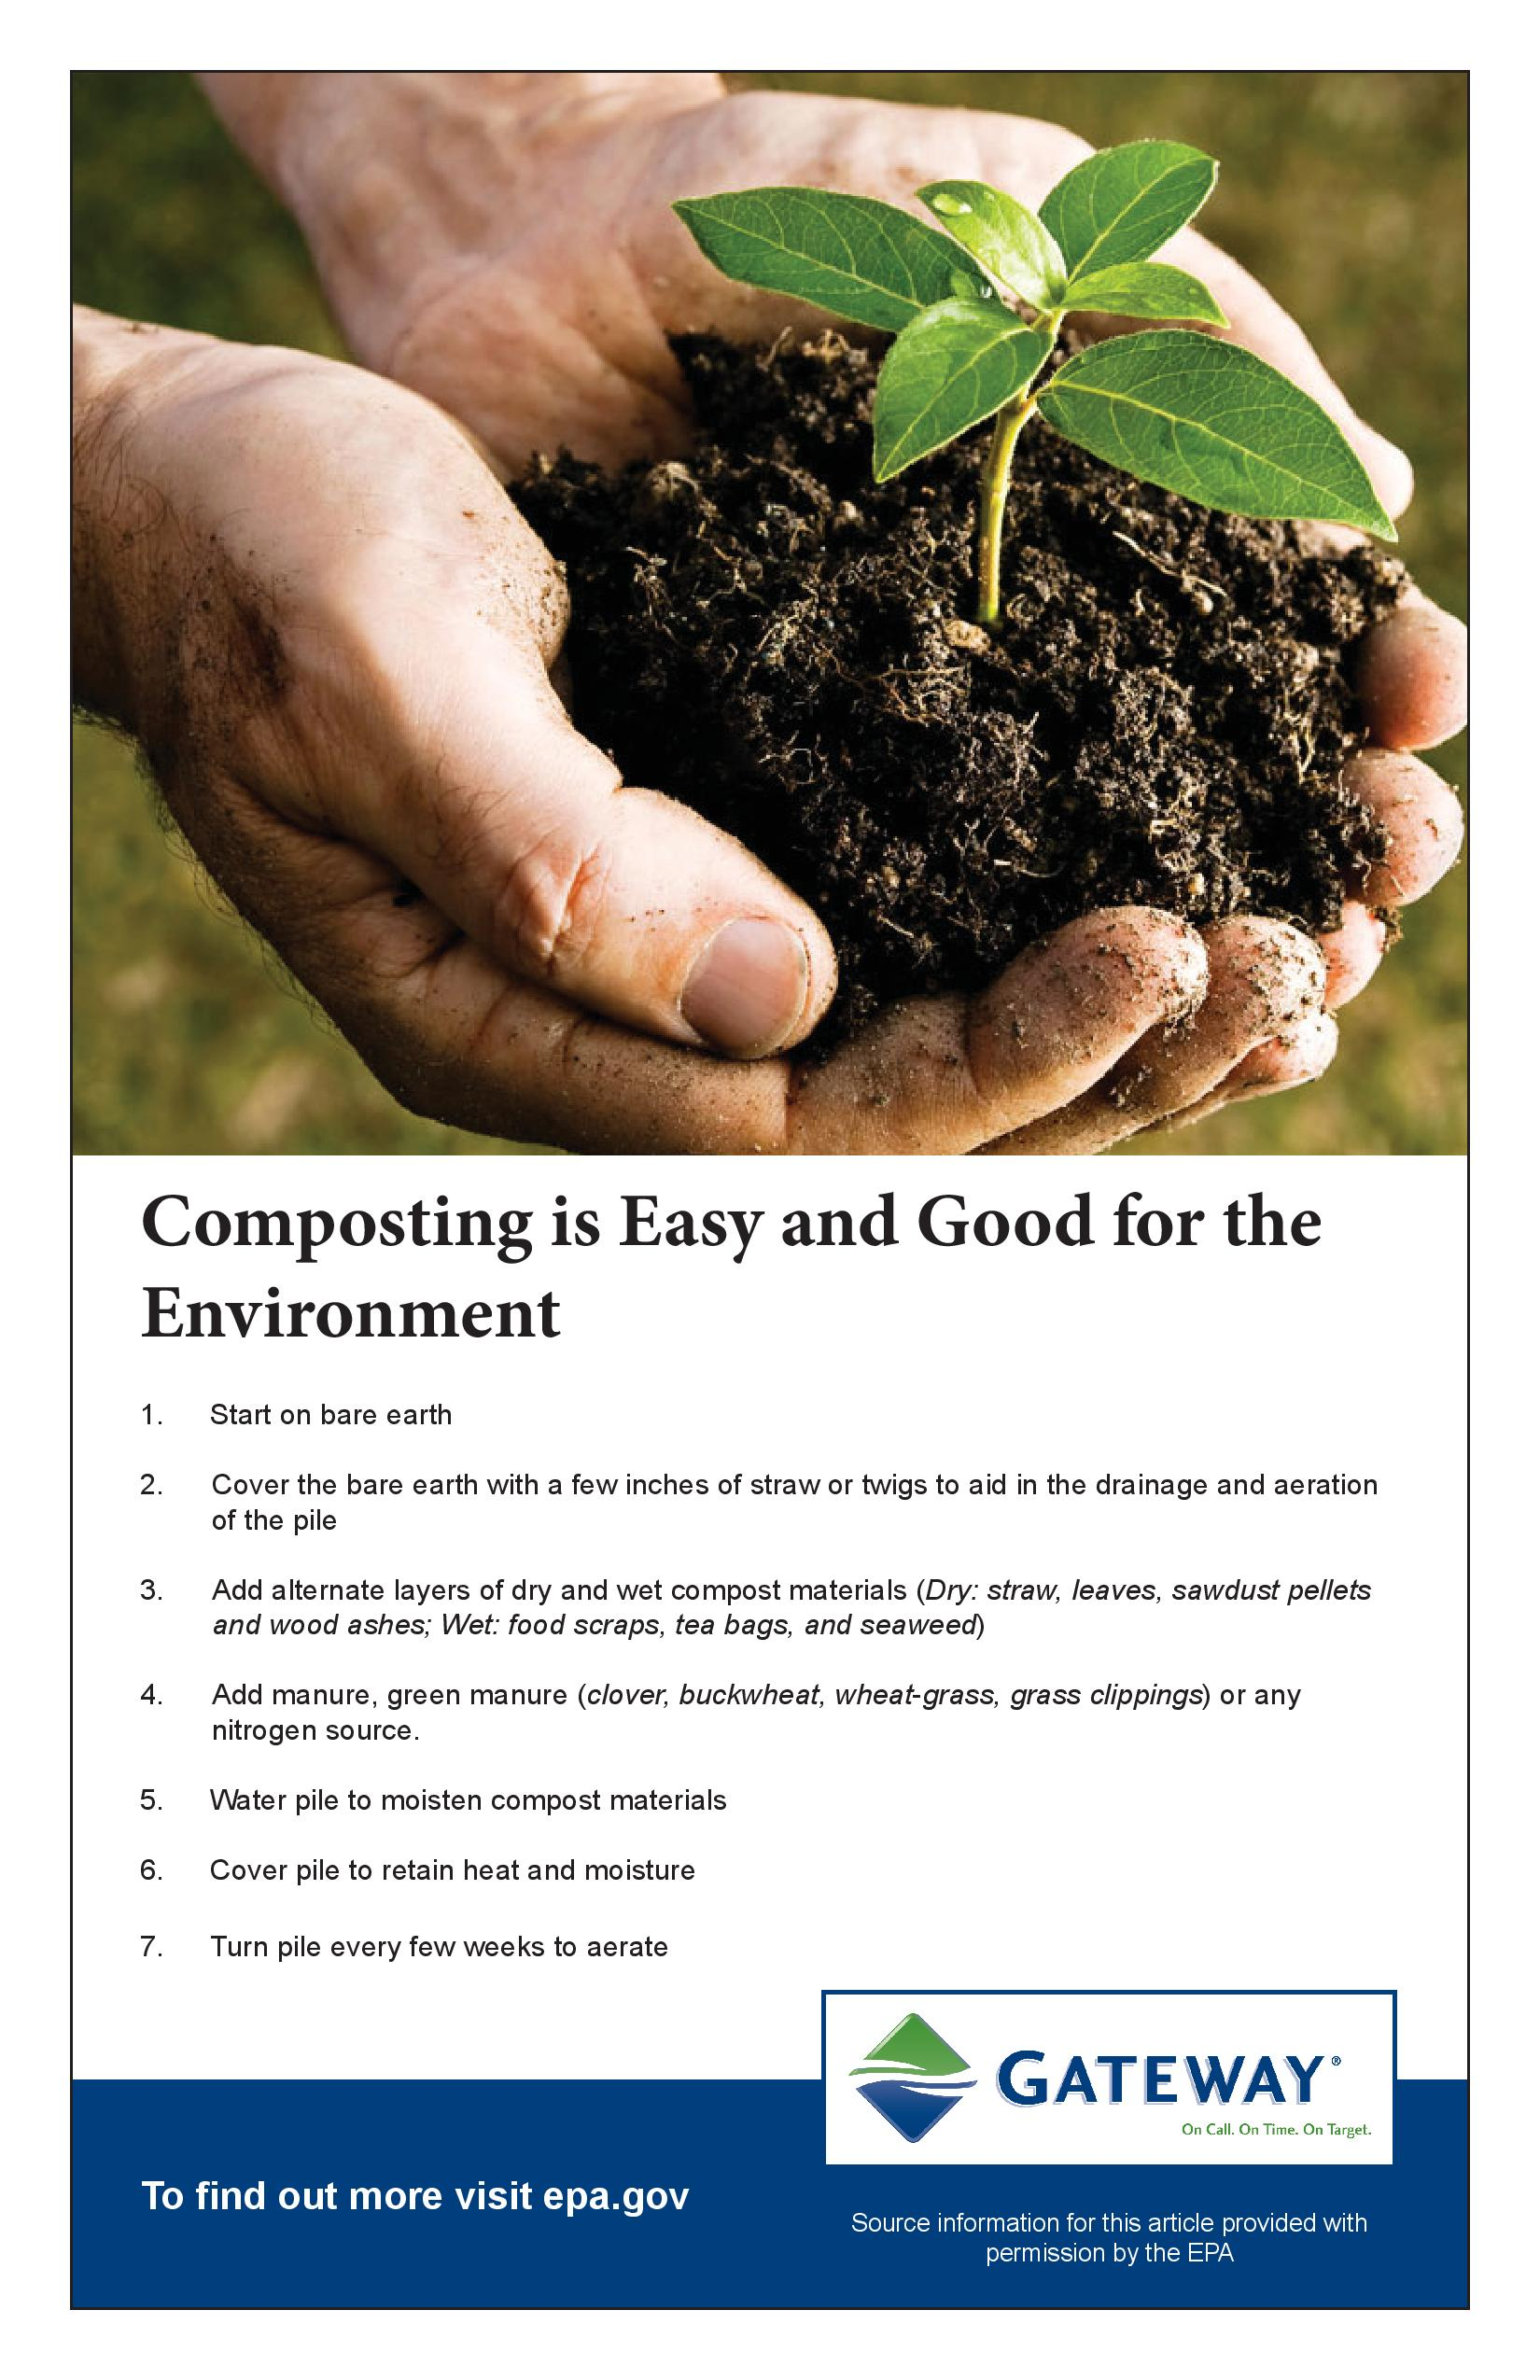 MS4 Composting Poster